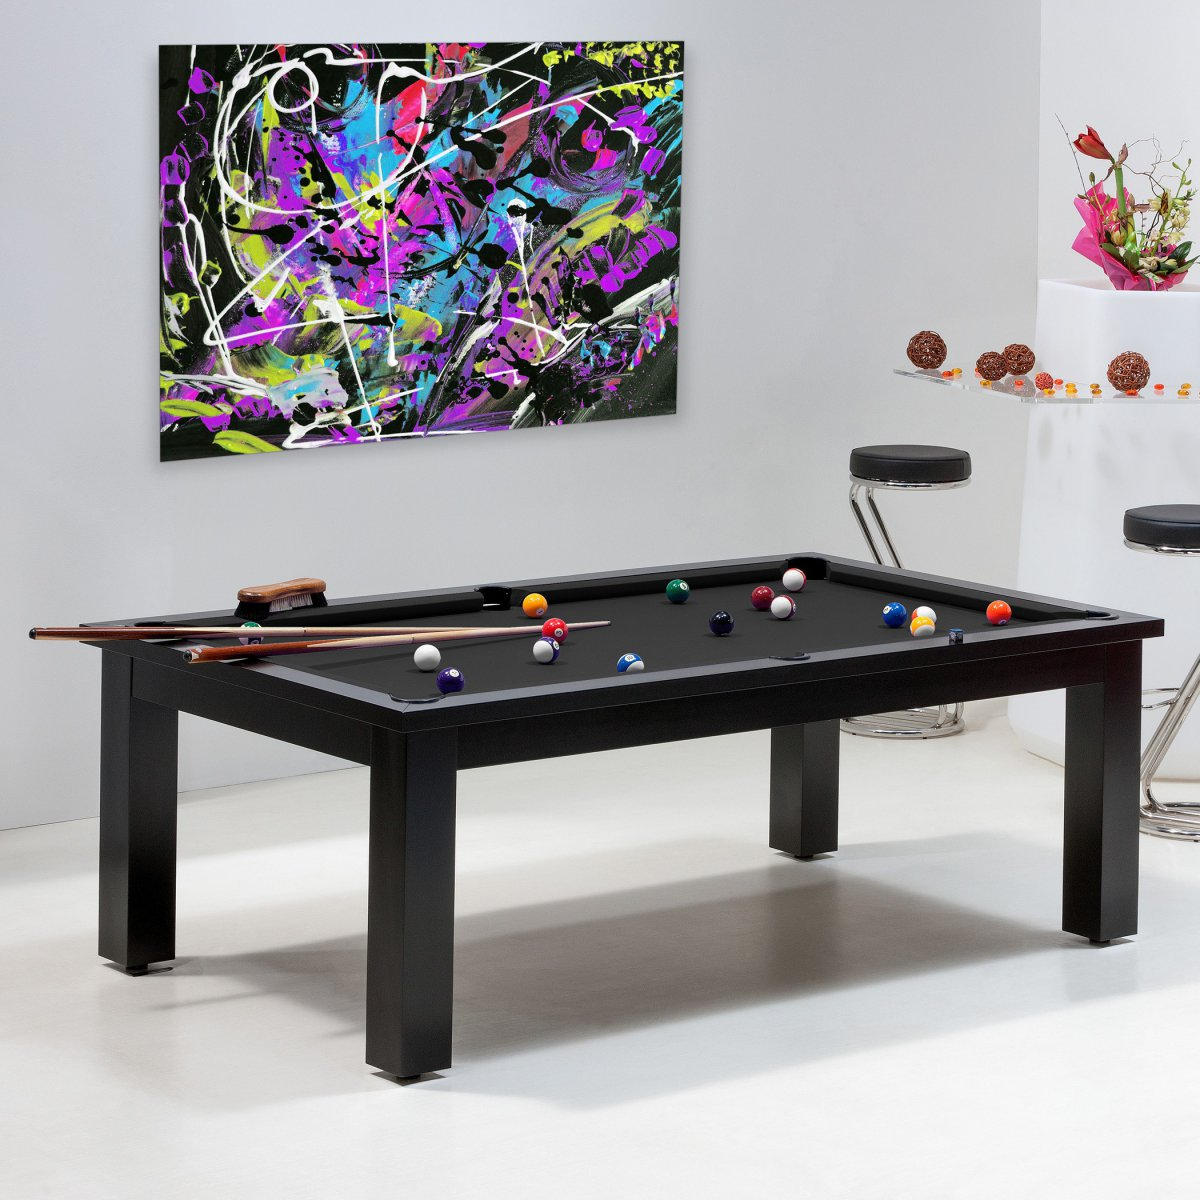 achat billard uniquement sur billards de france le miami. Black Bedroom Furniture Sets. Home Design Ideas